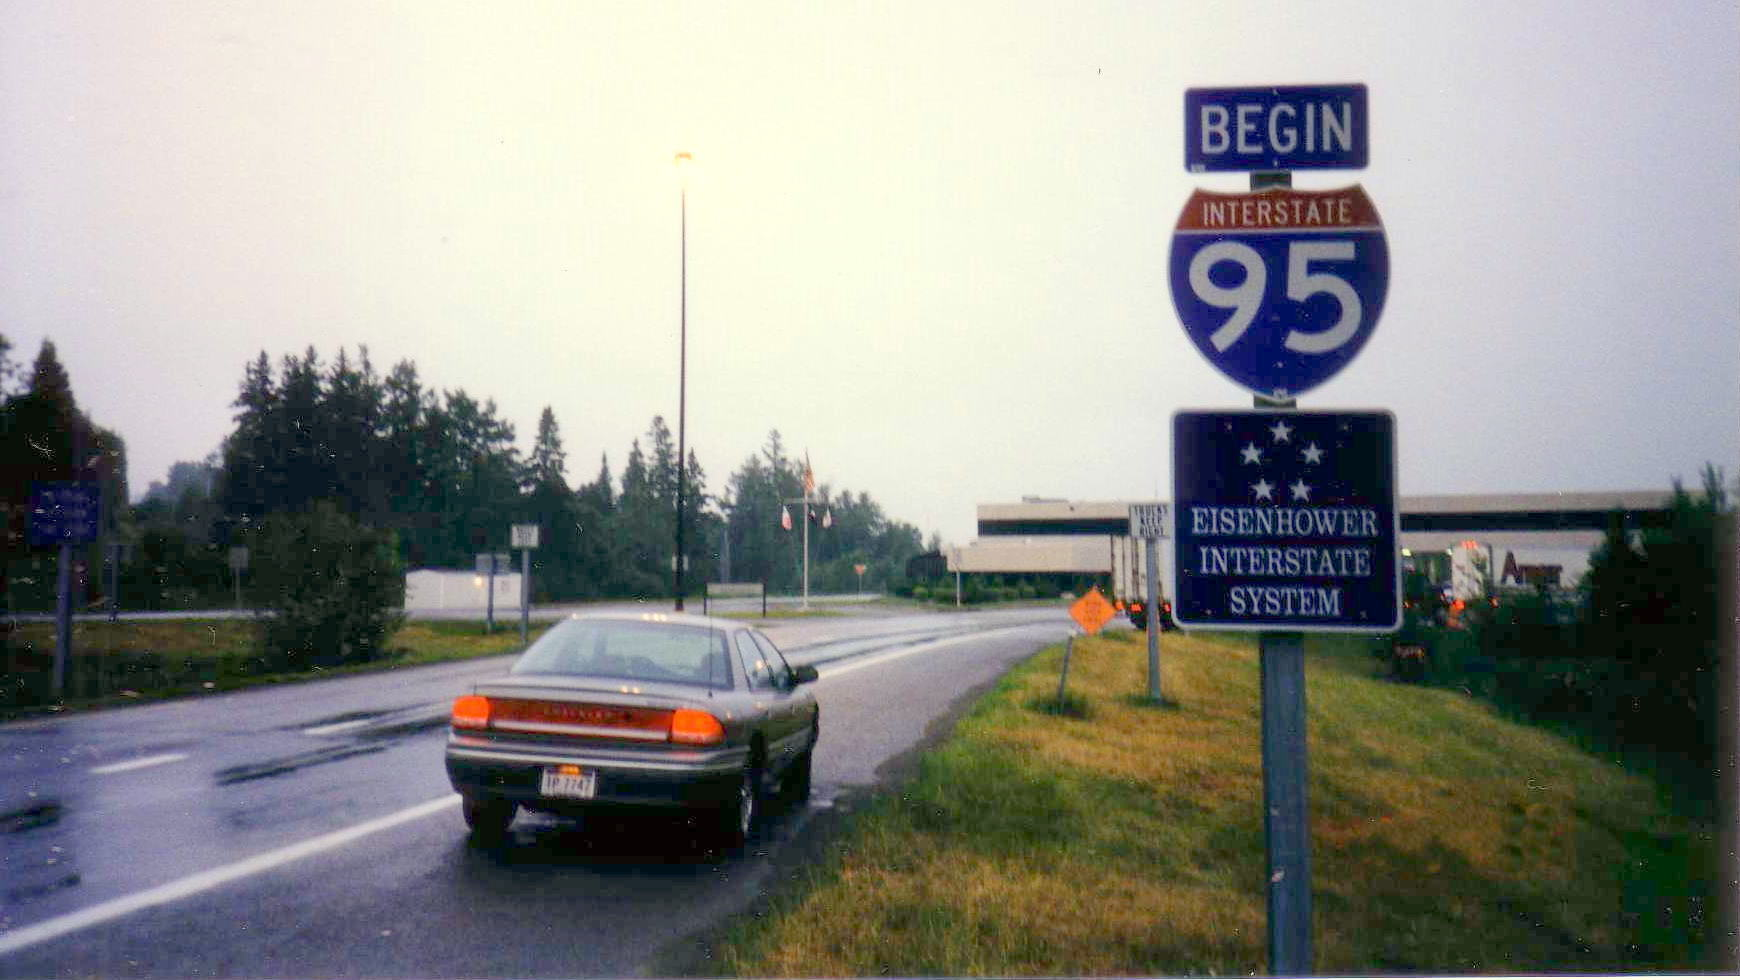 The start of I-95 in Houlton, Maine at the Canadian border